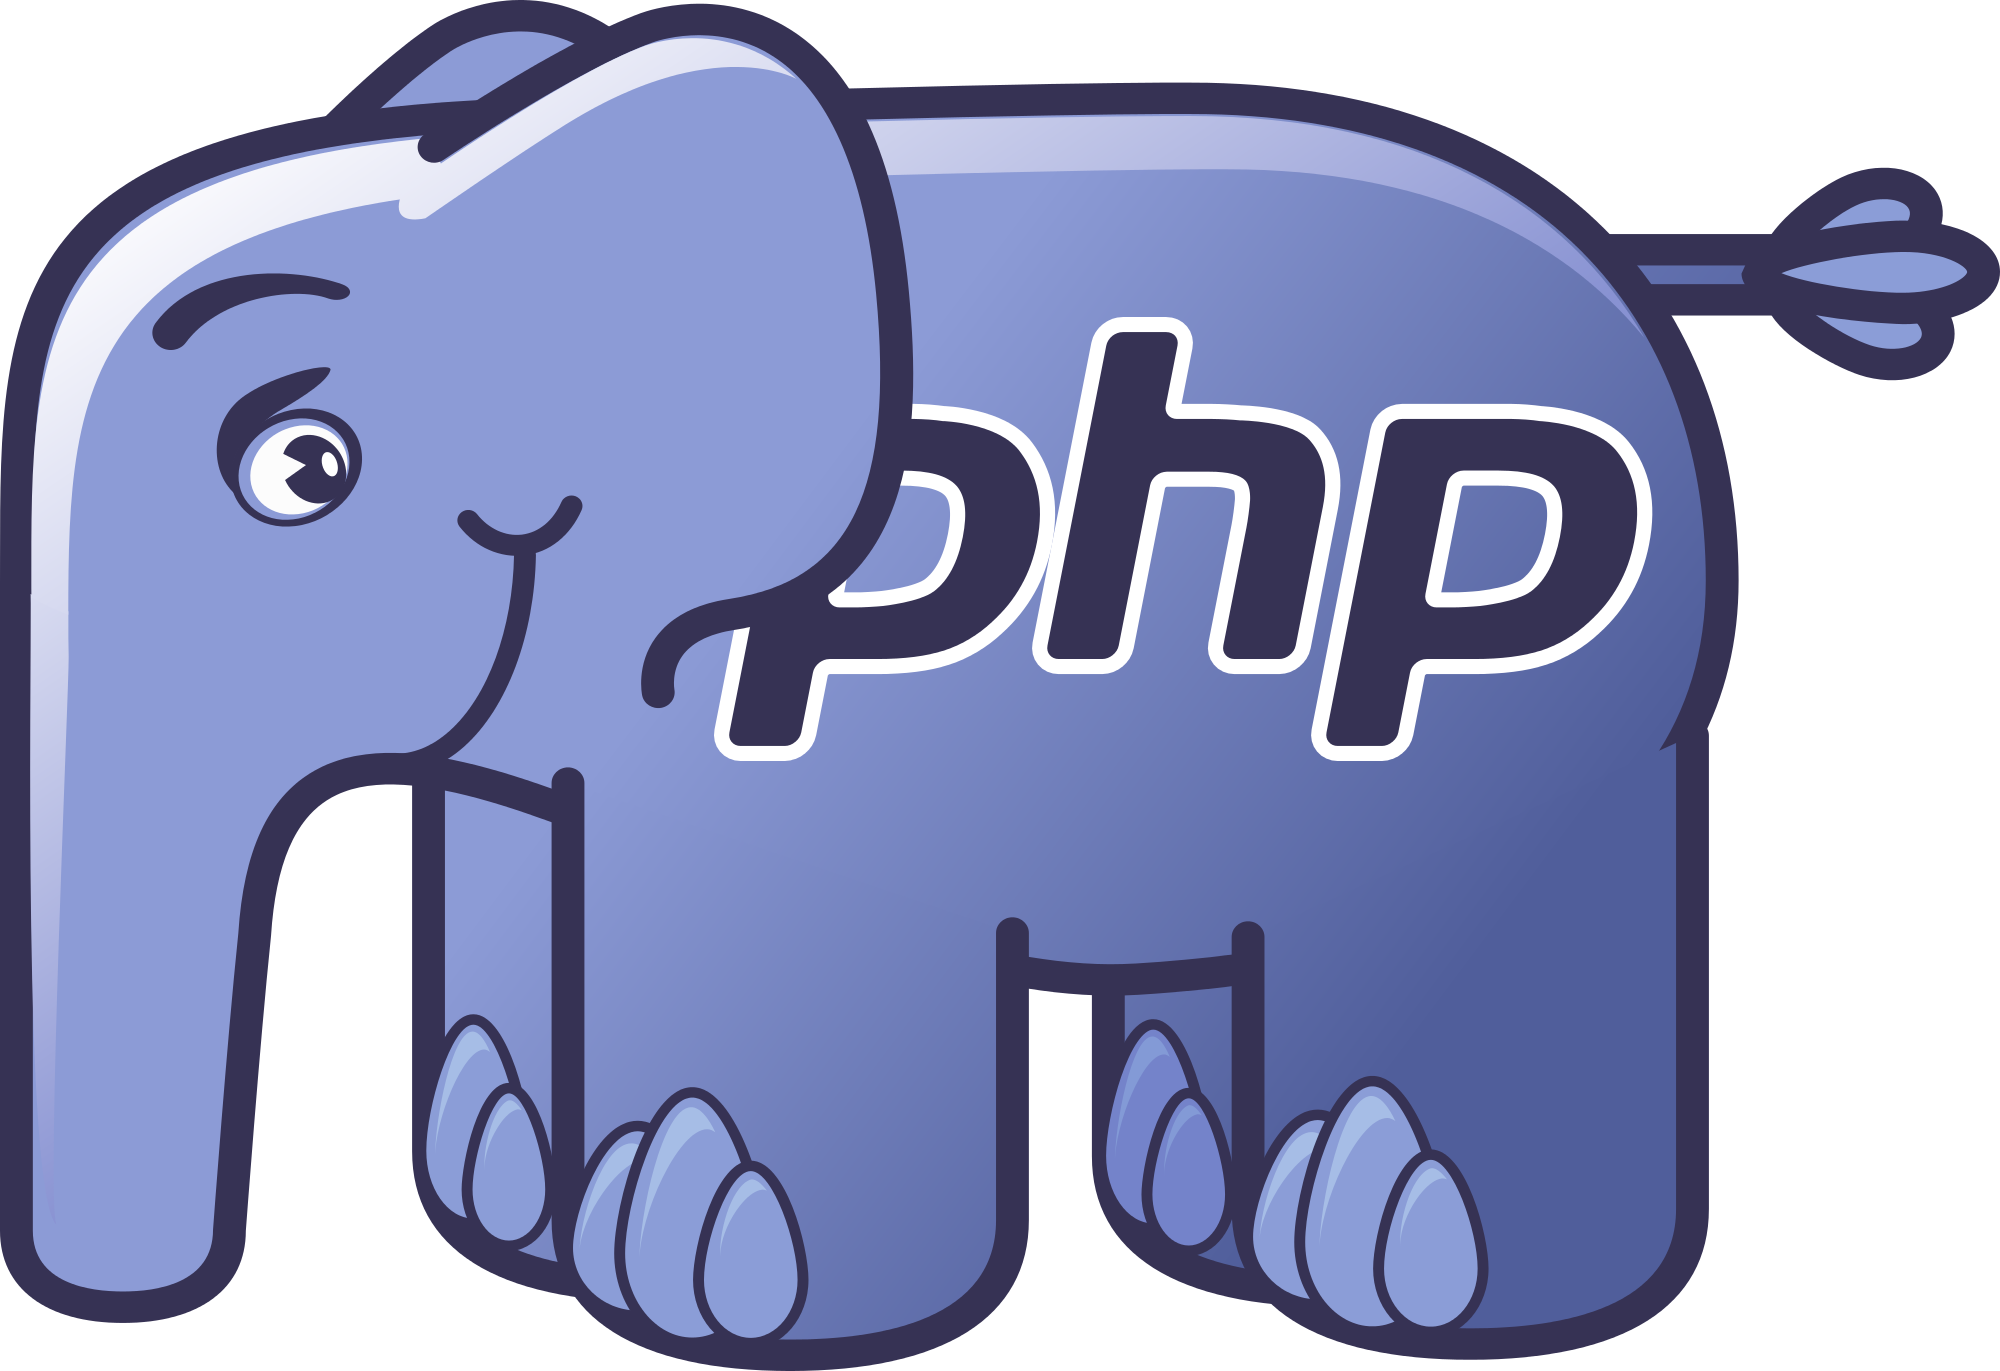 PHP Emblem Wallpaper